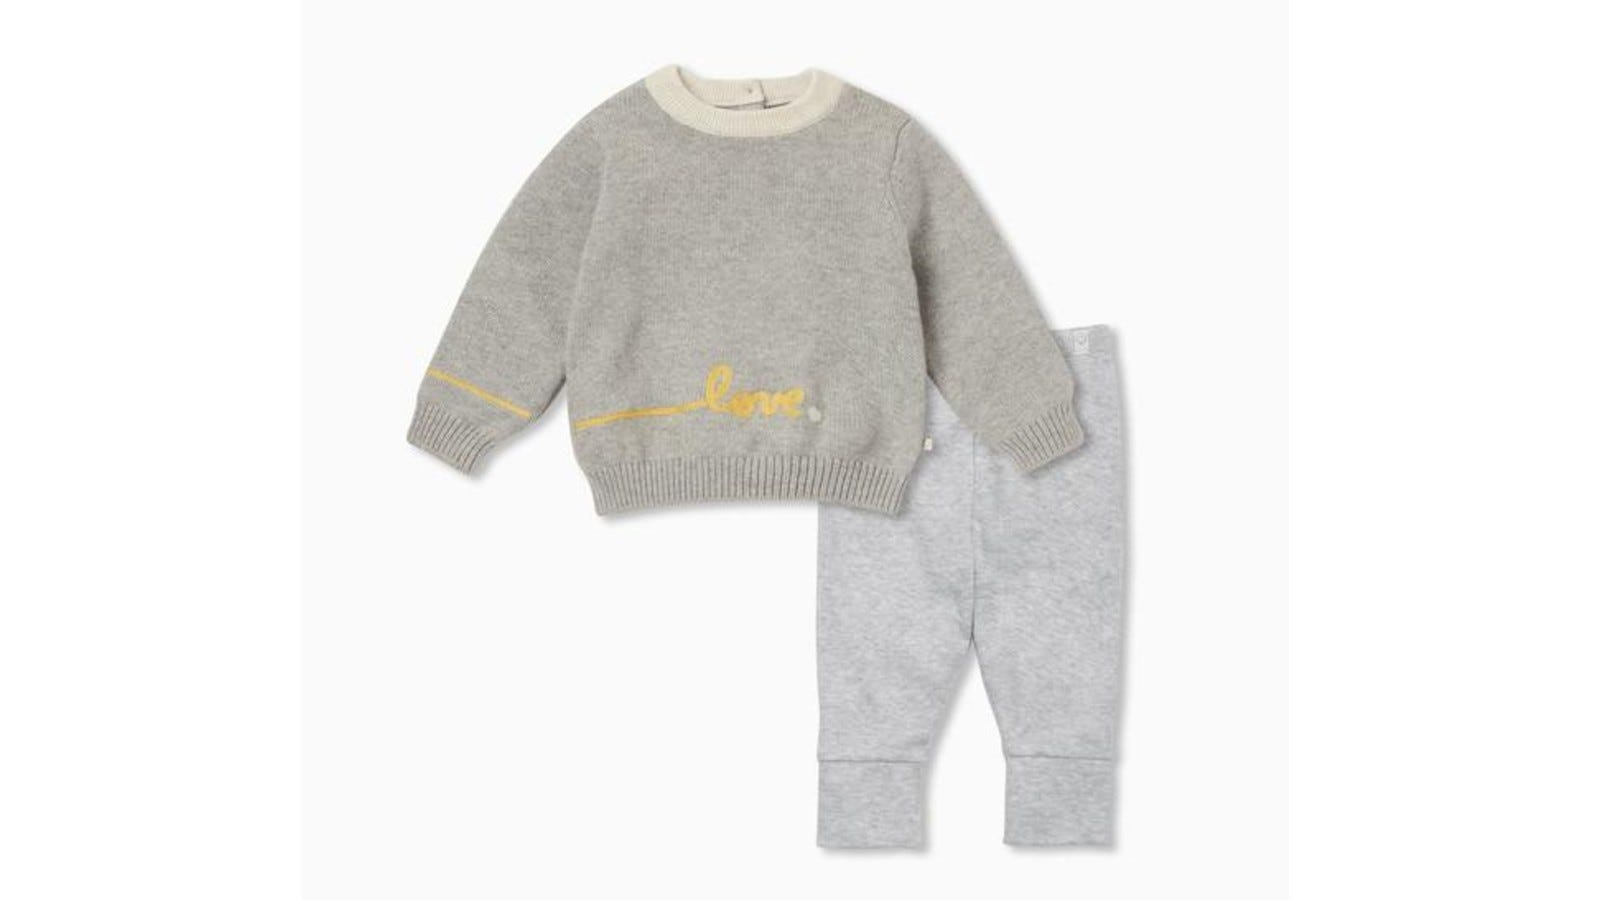 The Knitted Slogan Jumper and Leggings Outfit.